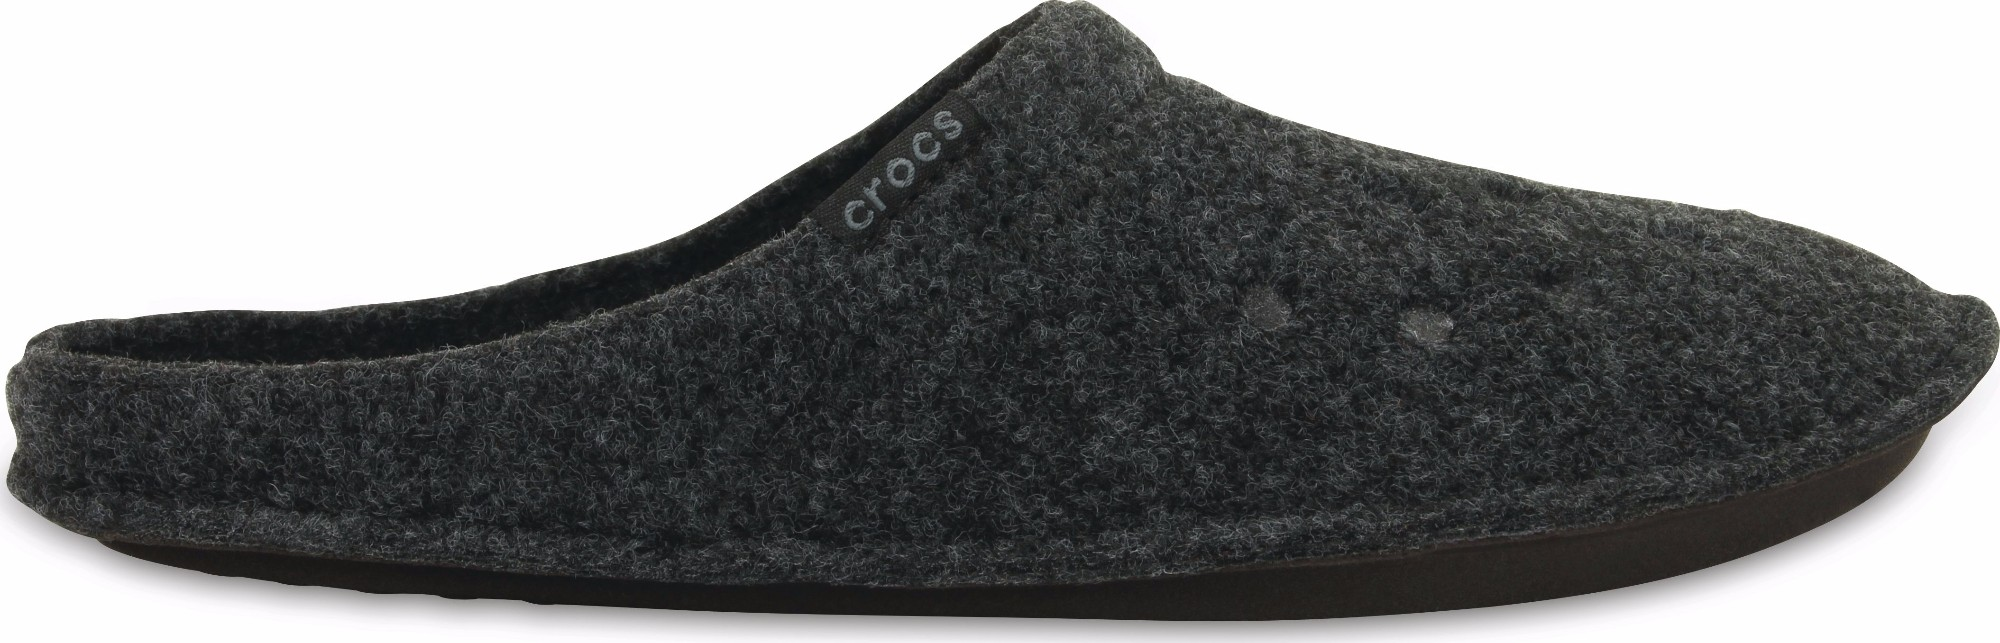 Crocs™ Classic Slipper Black/Black 41